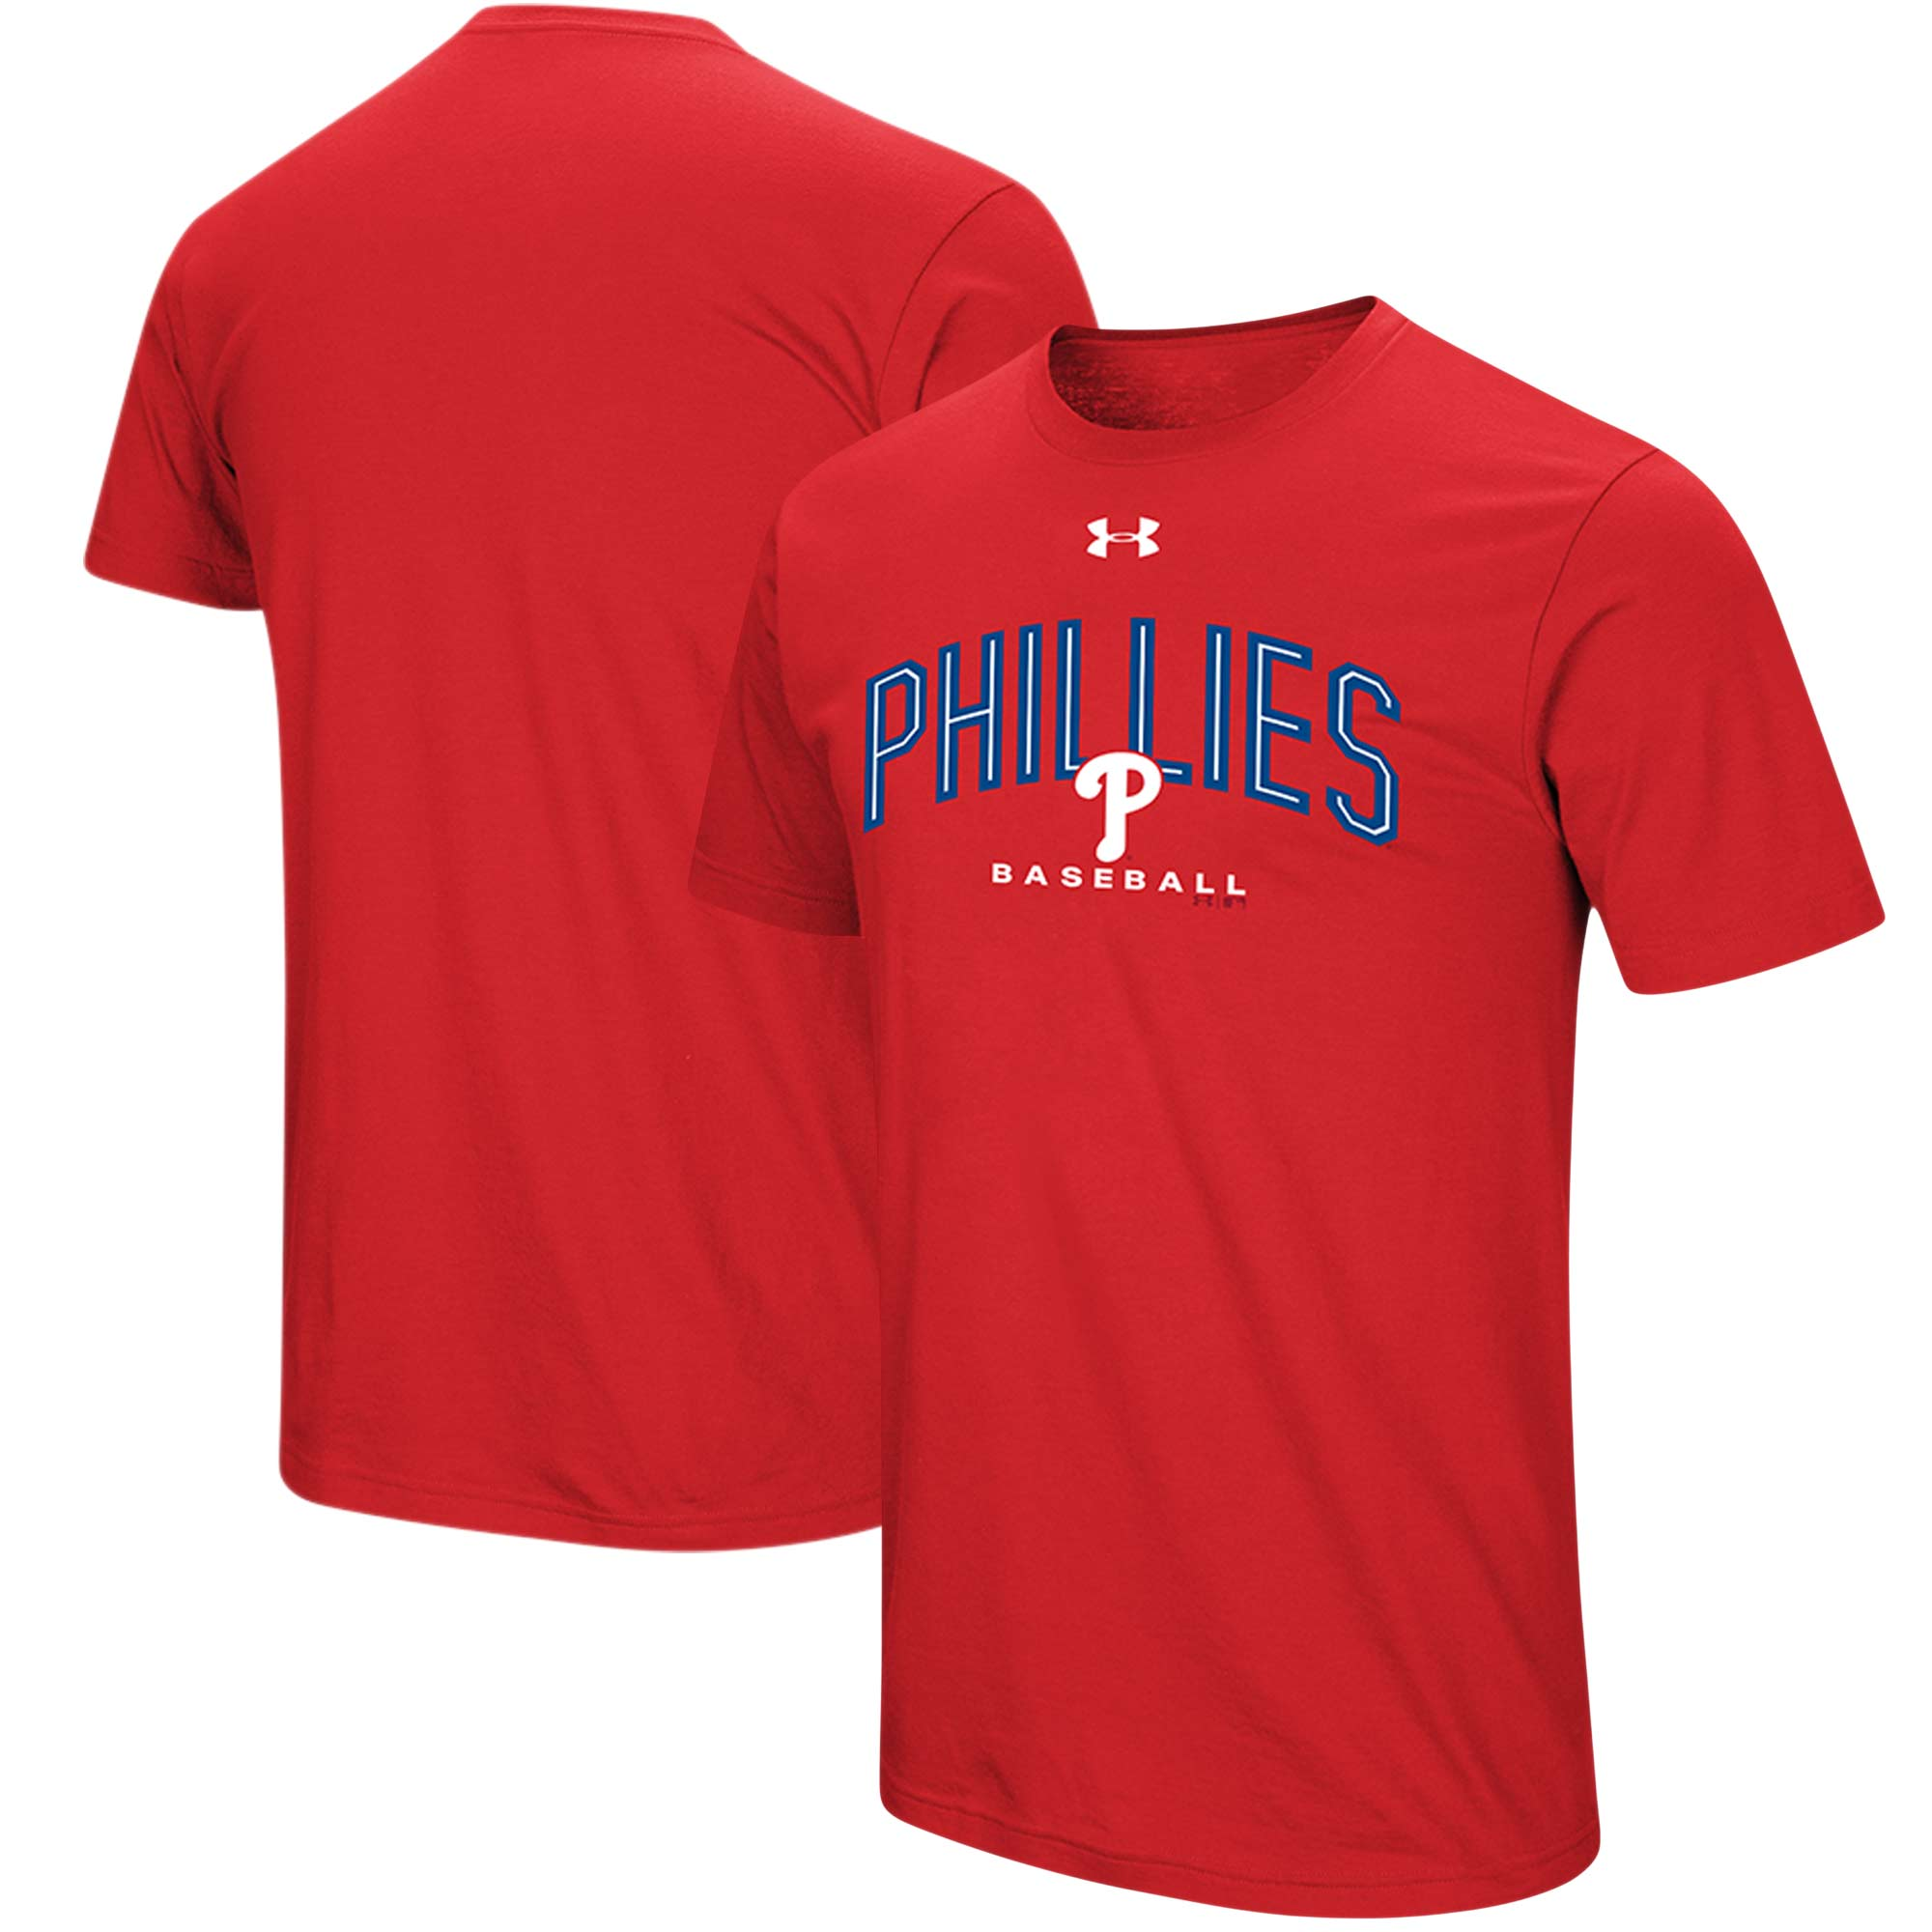 Philadelphia Phillies Under Armour Performance Arch T-Shirt - Red